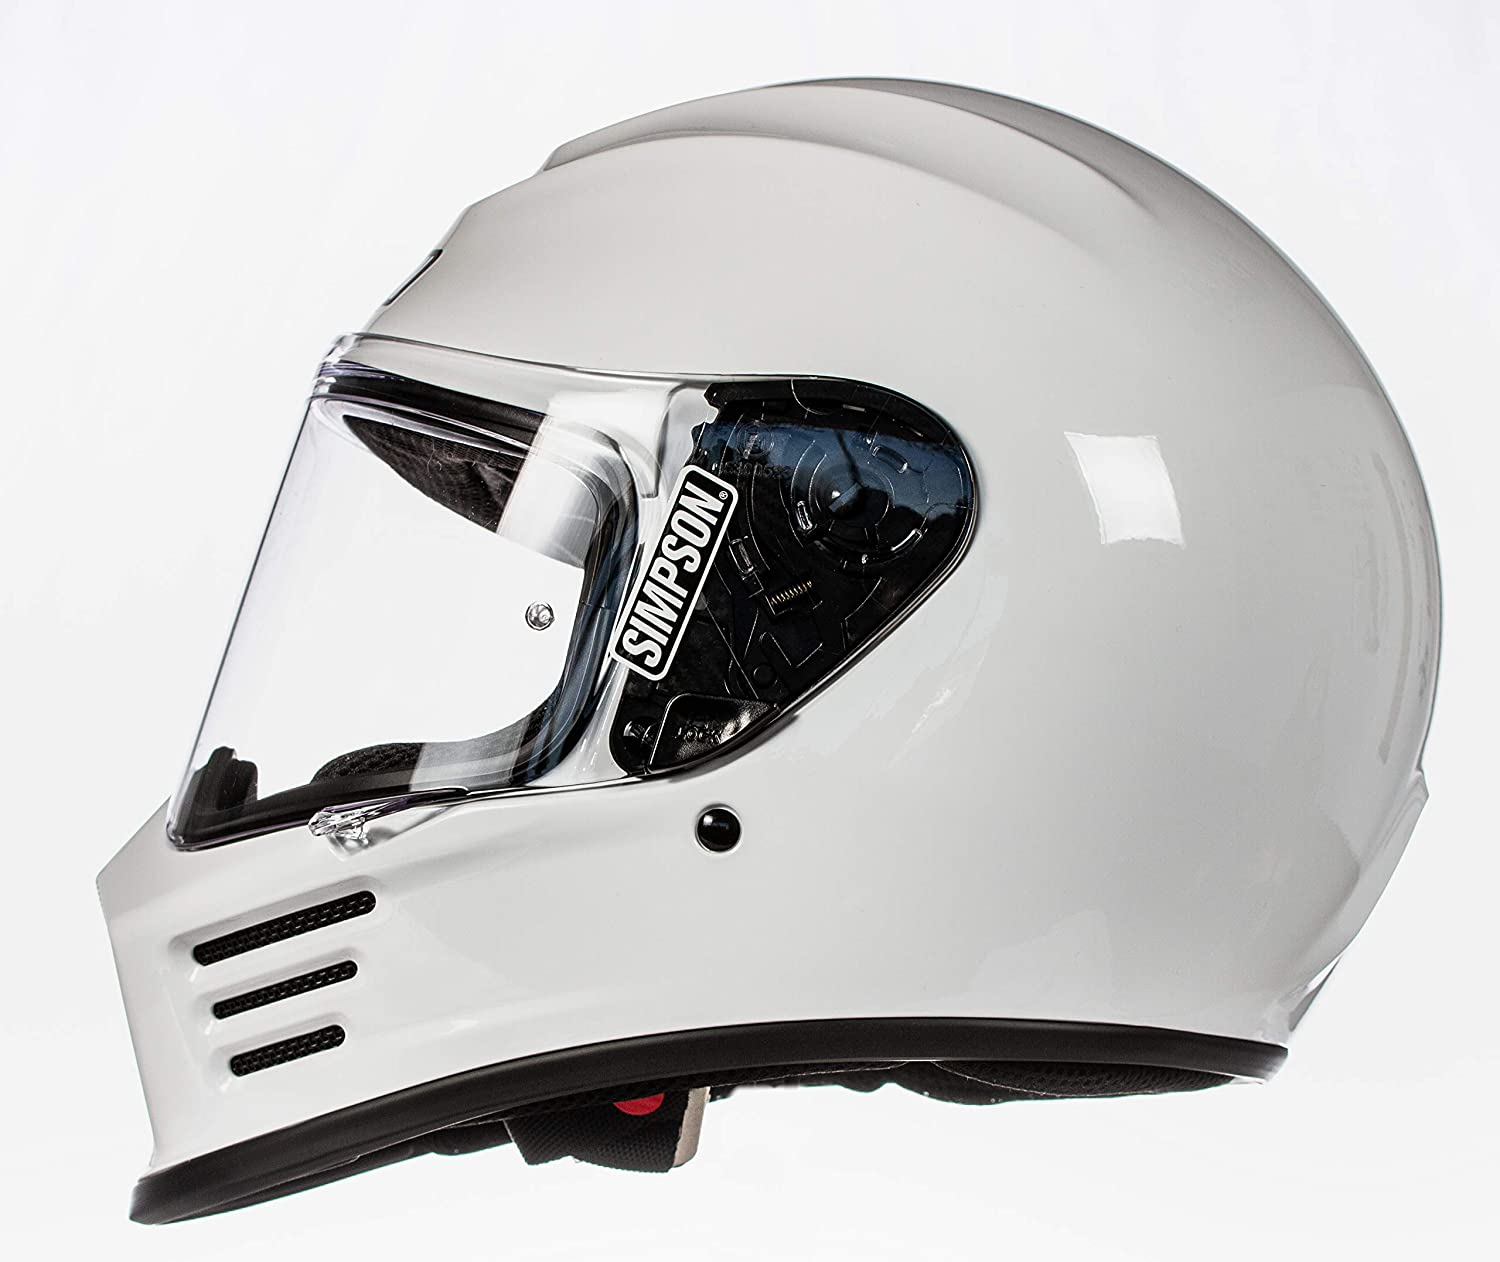 Simpson SPBXS1 Speed Bandit Full Face Motorcycle Helmet Size XS Clear Shield Included White